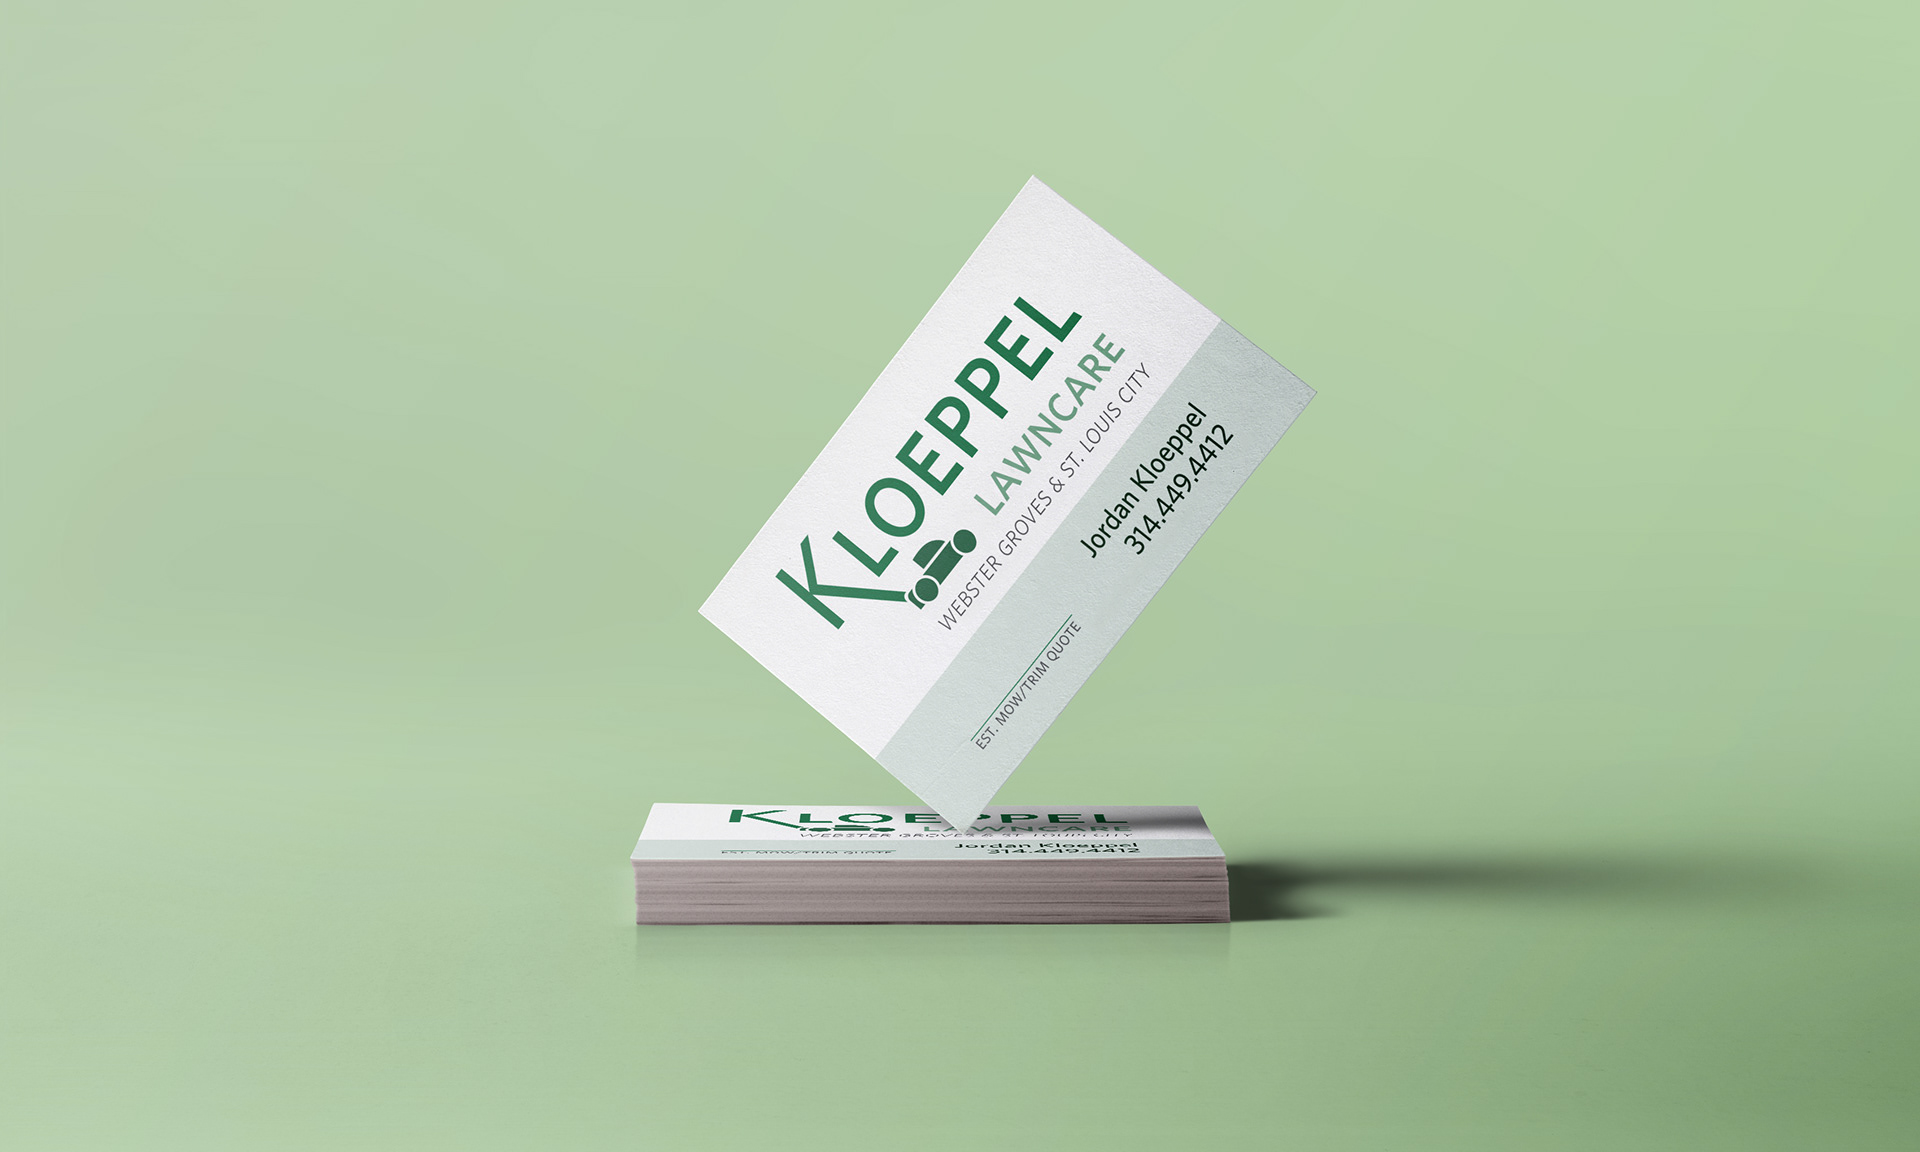 Jordan richter kloeppel lawncare branding kloeppels lawncare business operating out of st louis business cards were the main focus for the project although yard signs and other promotional colourmoves